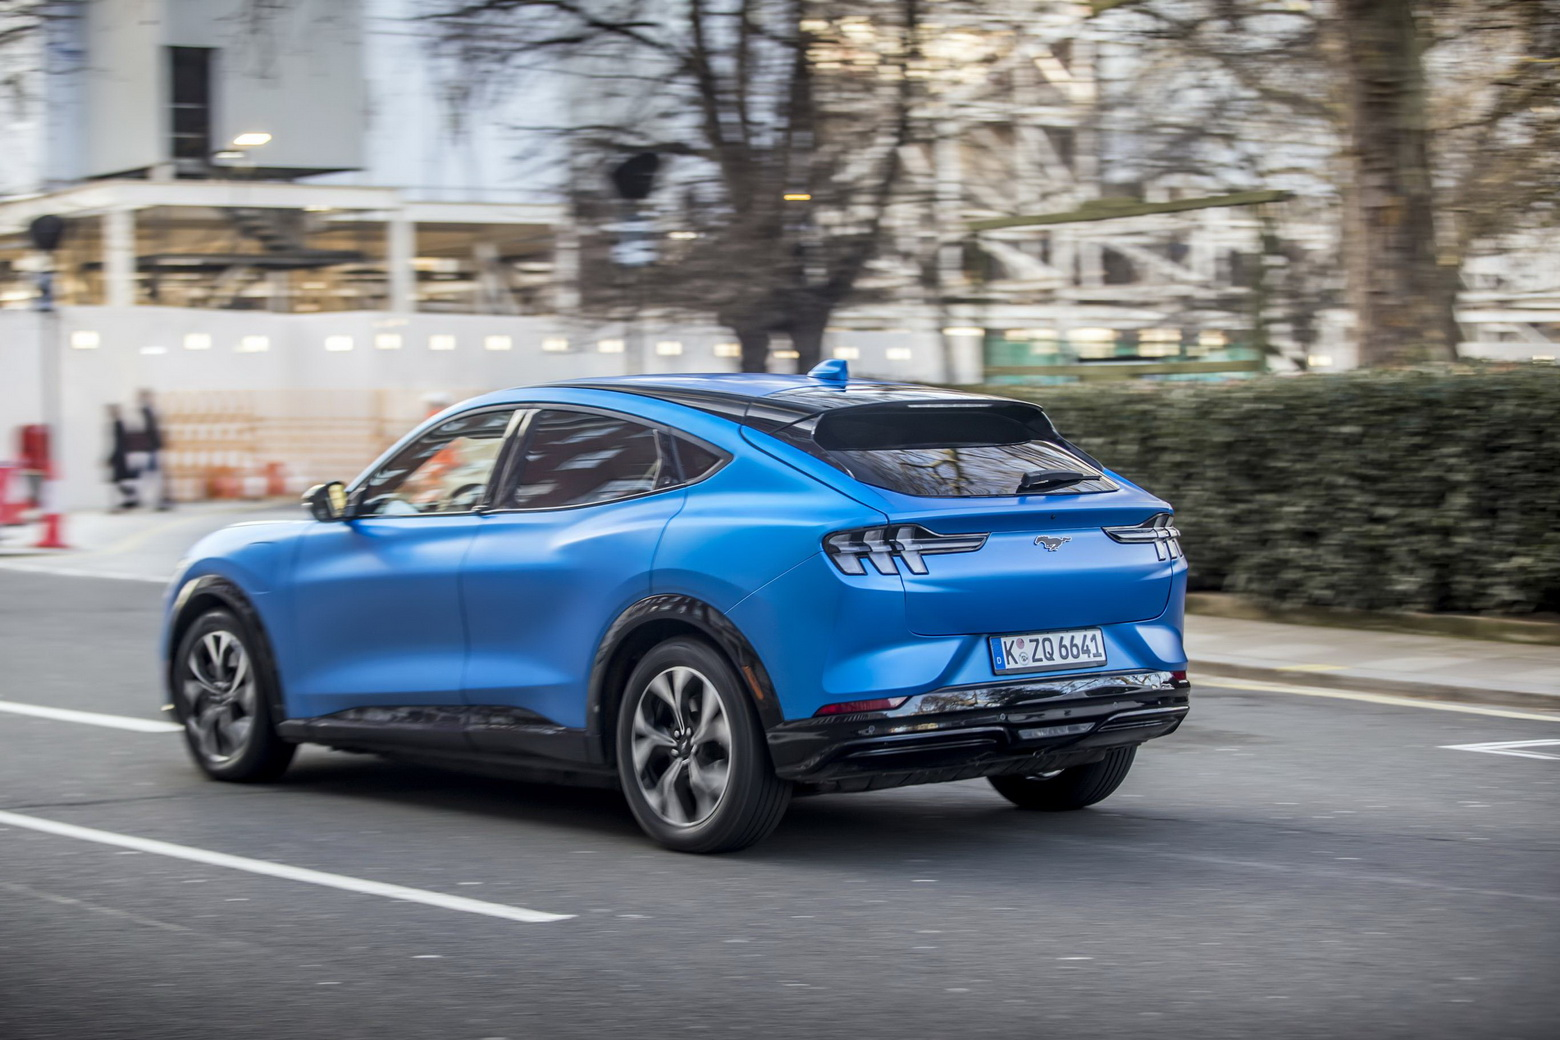 Ford-Mustang-Mach-E-Europe-3